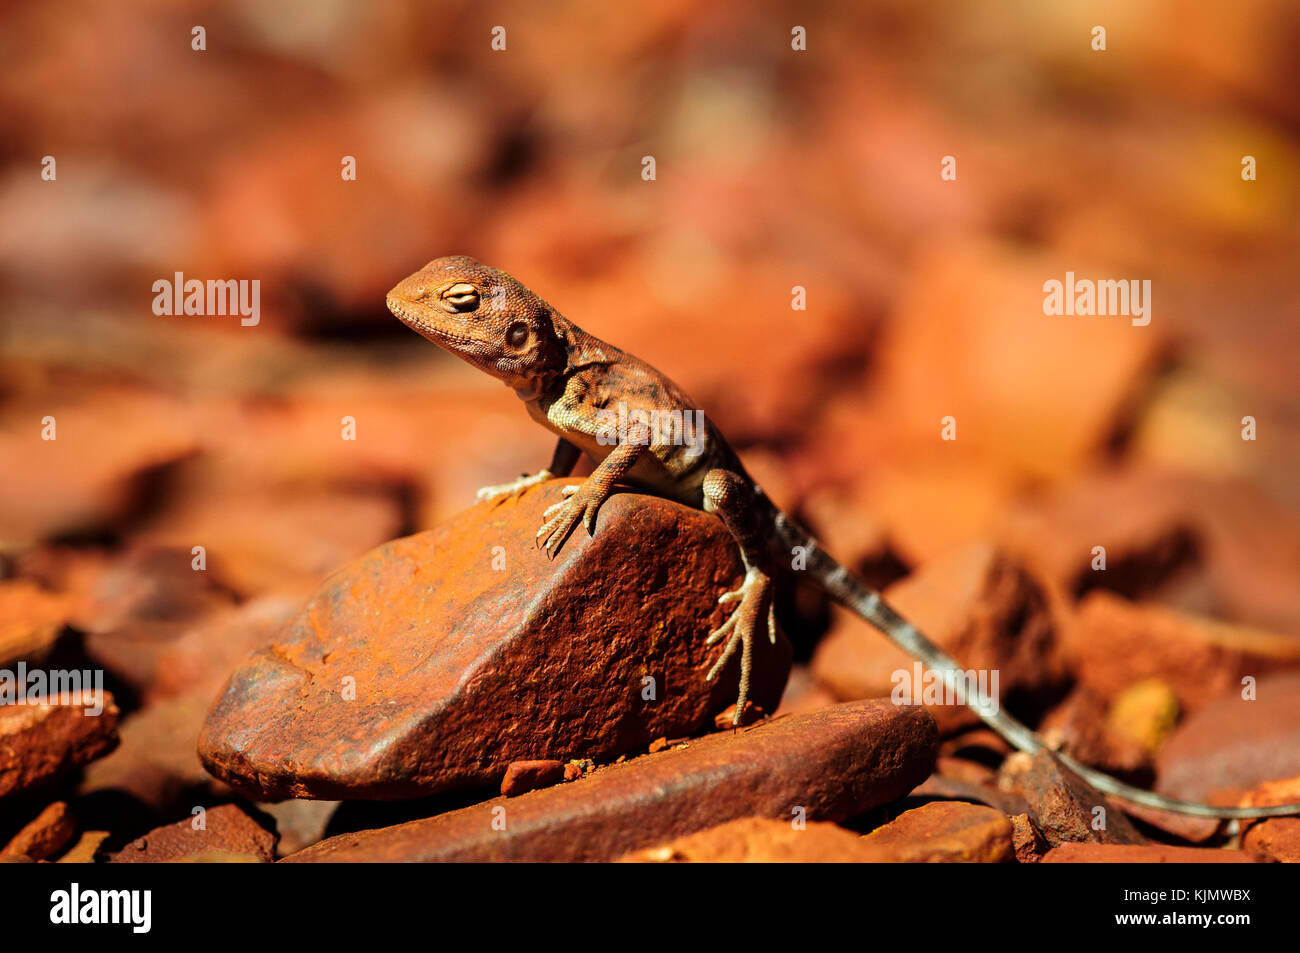 Well camouflaged Ring-tailed Dragon. - Stock Image